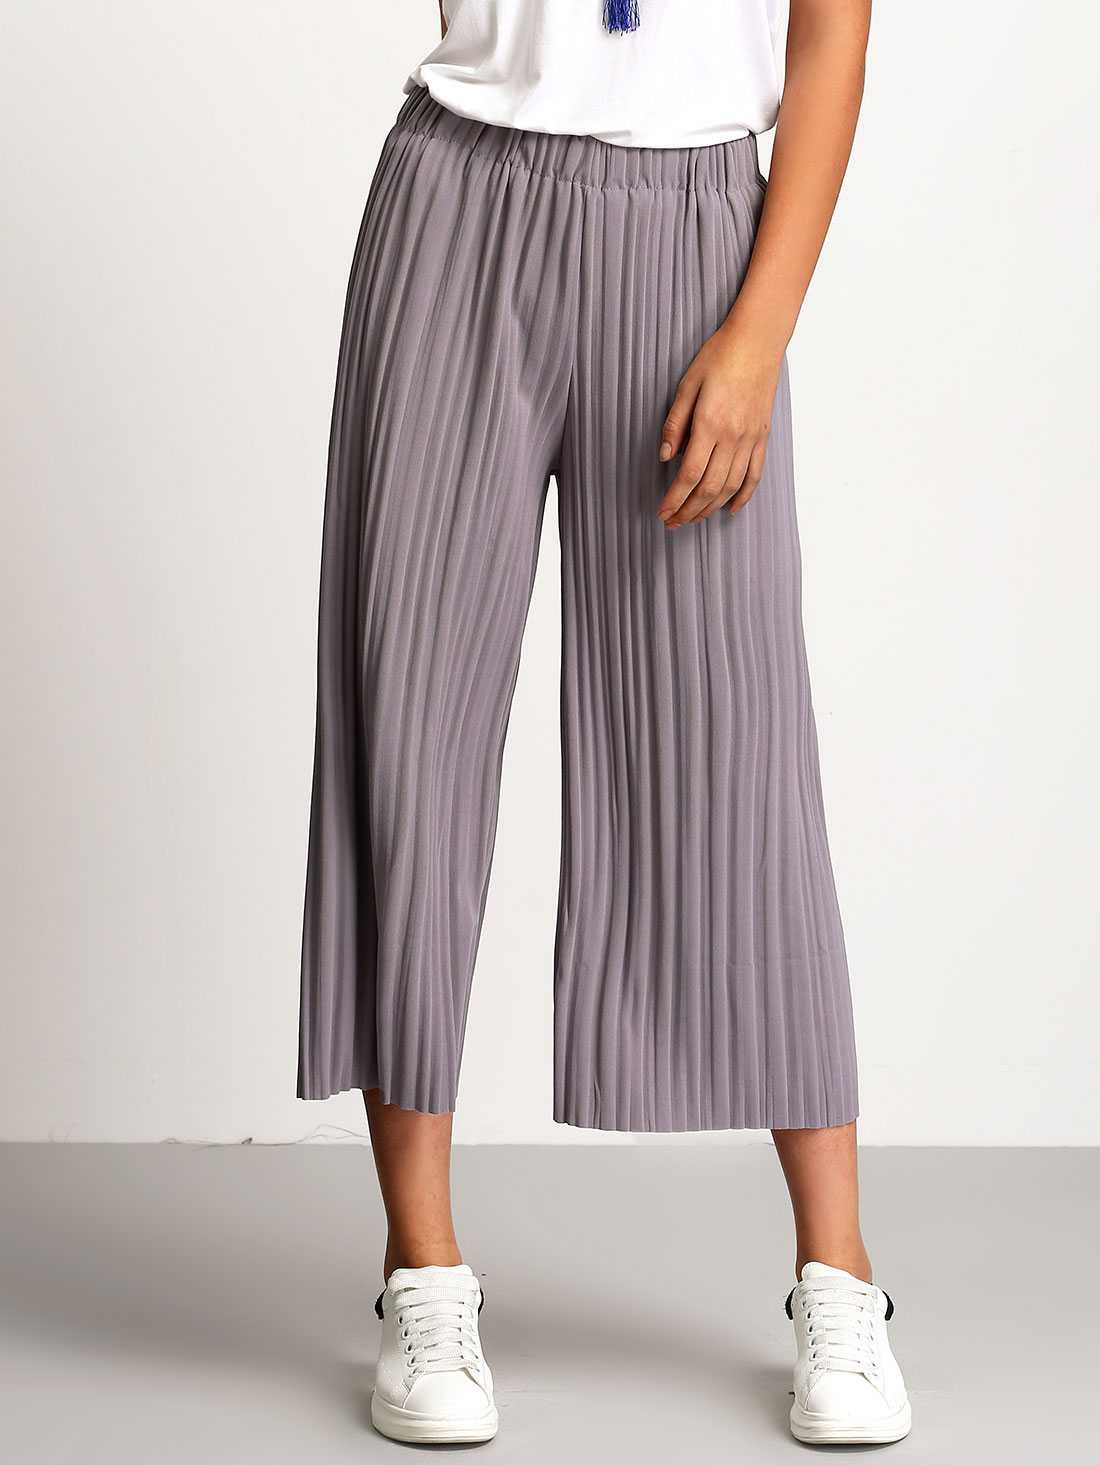 http://it.shein.com/Grey-Elastic-Waist-Pleated-Pant-p-265737-cat-1740.html